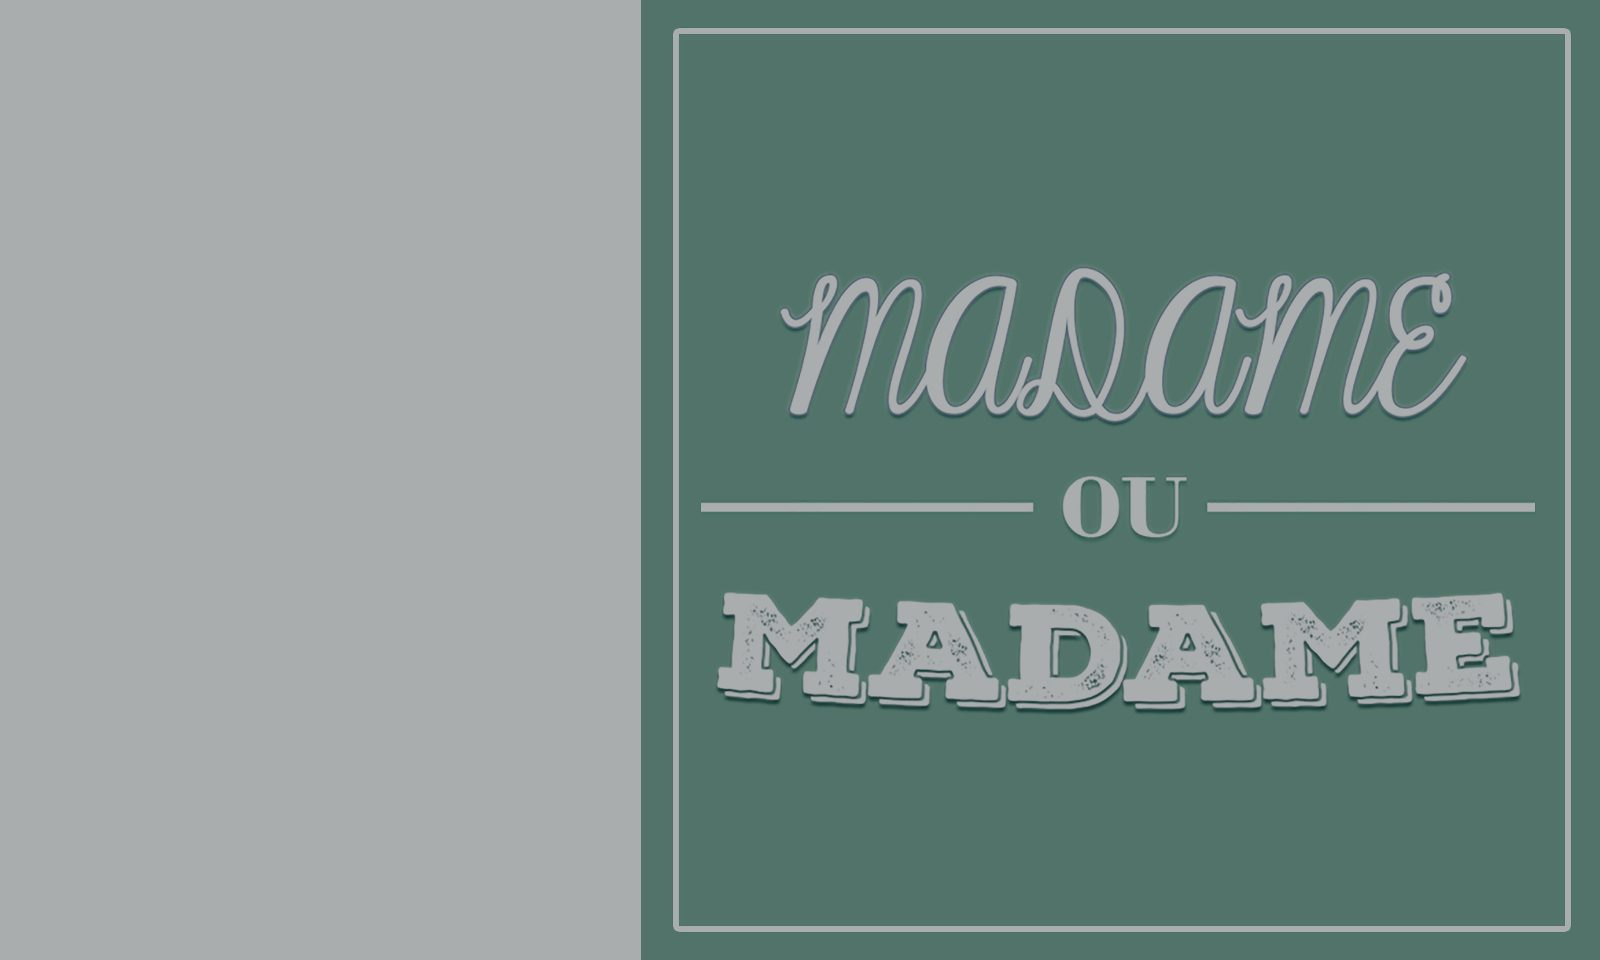 Archives mars 2019 - Madame ou Madame - L'émission de radio